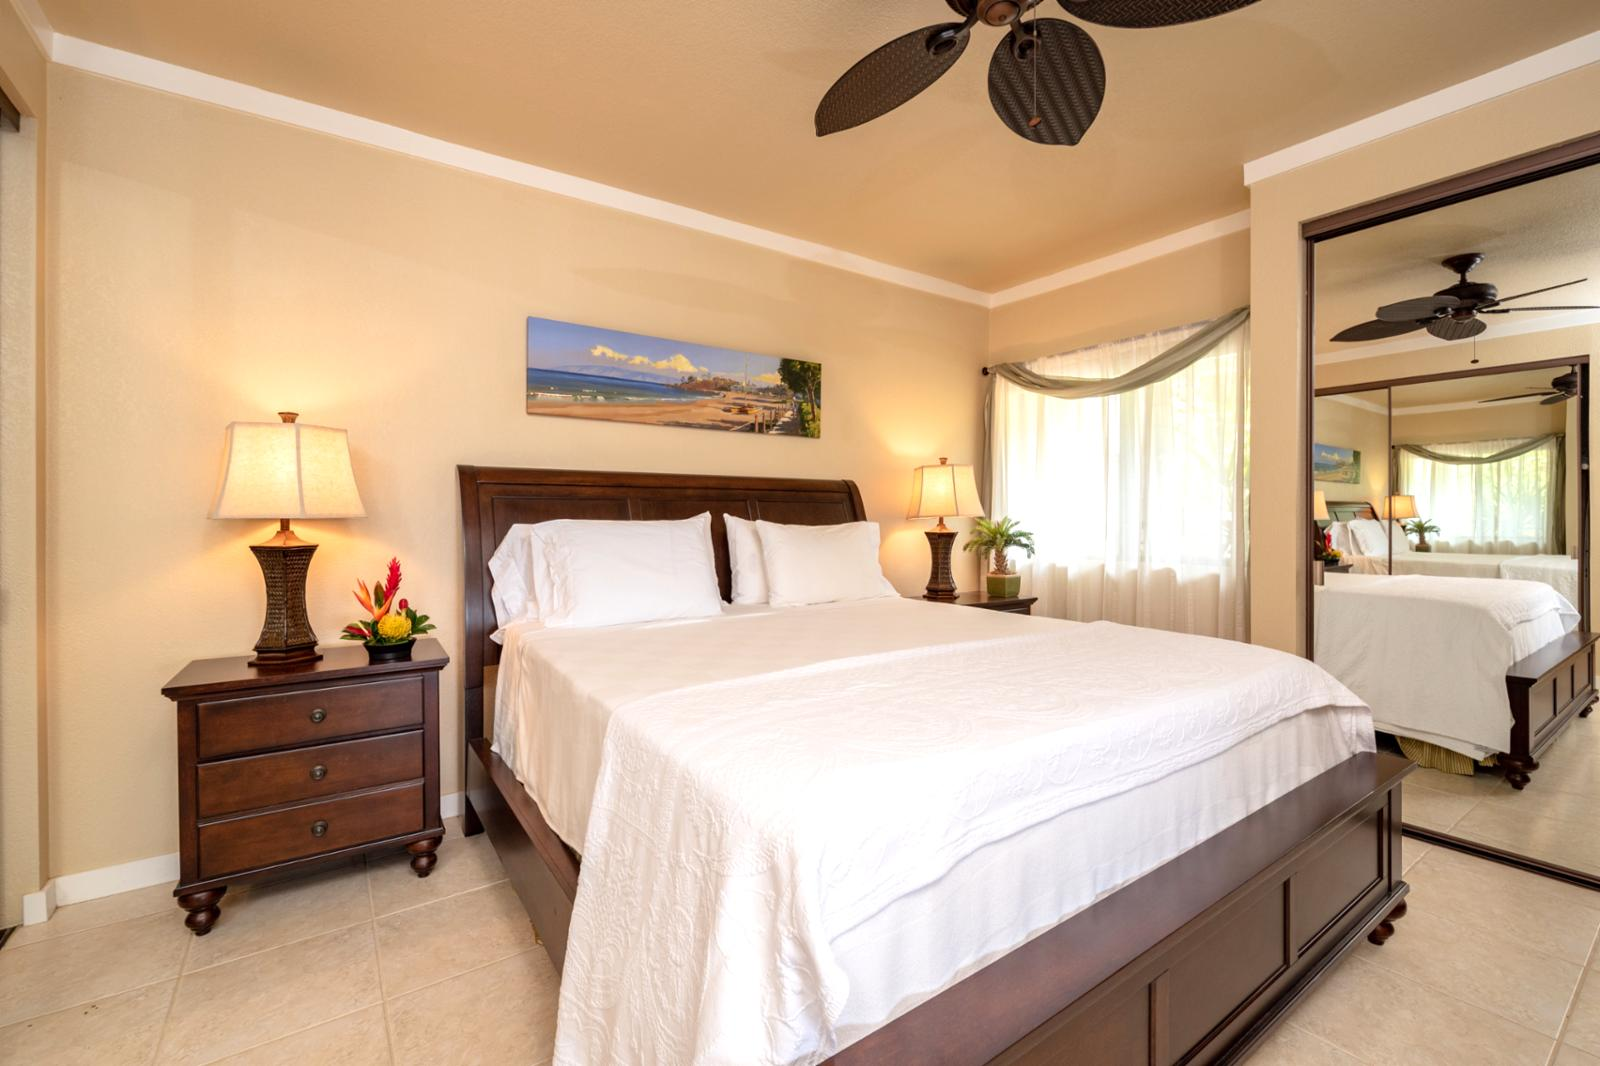 Large guest suite with garden views easy access to the pool deck